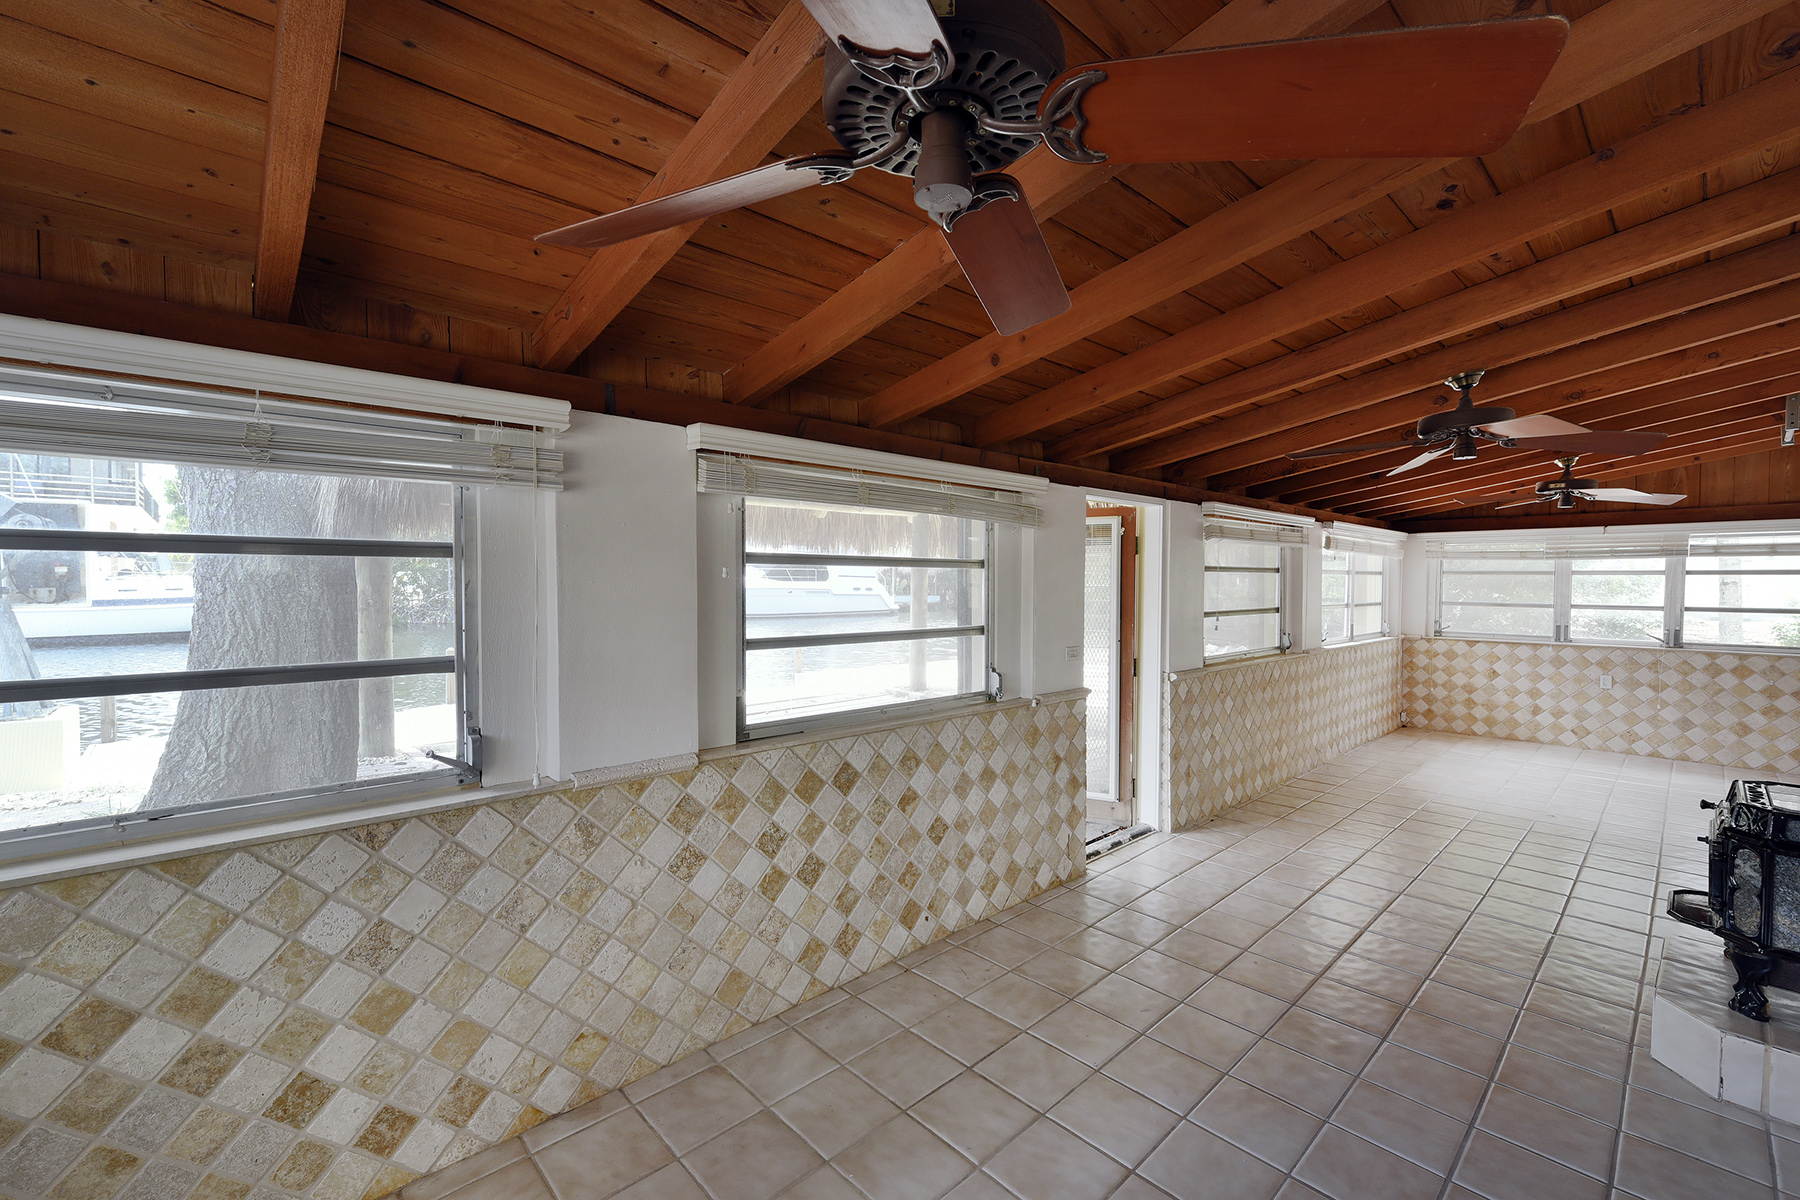 Additional photo for property listing at Ground Level Canalfront Home 26 Jean La Fitte Drive Key Largo, Florida 33037 United States